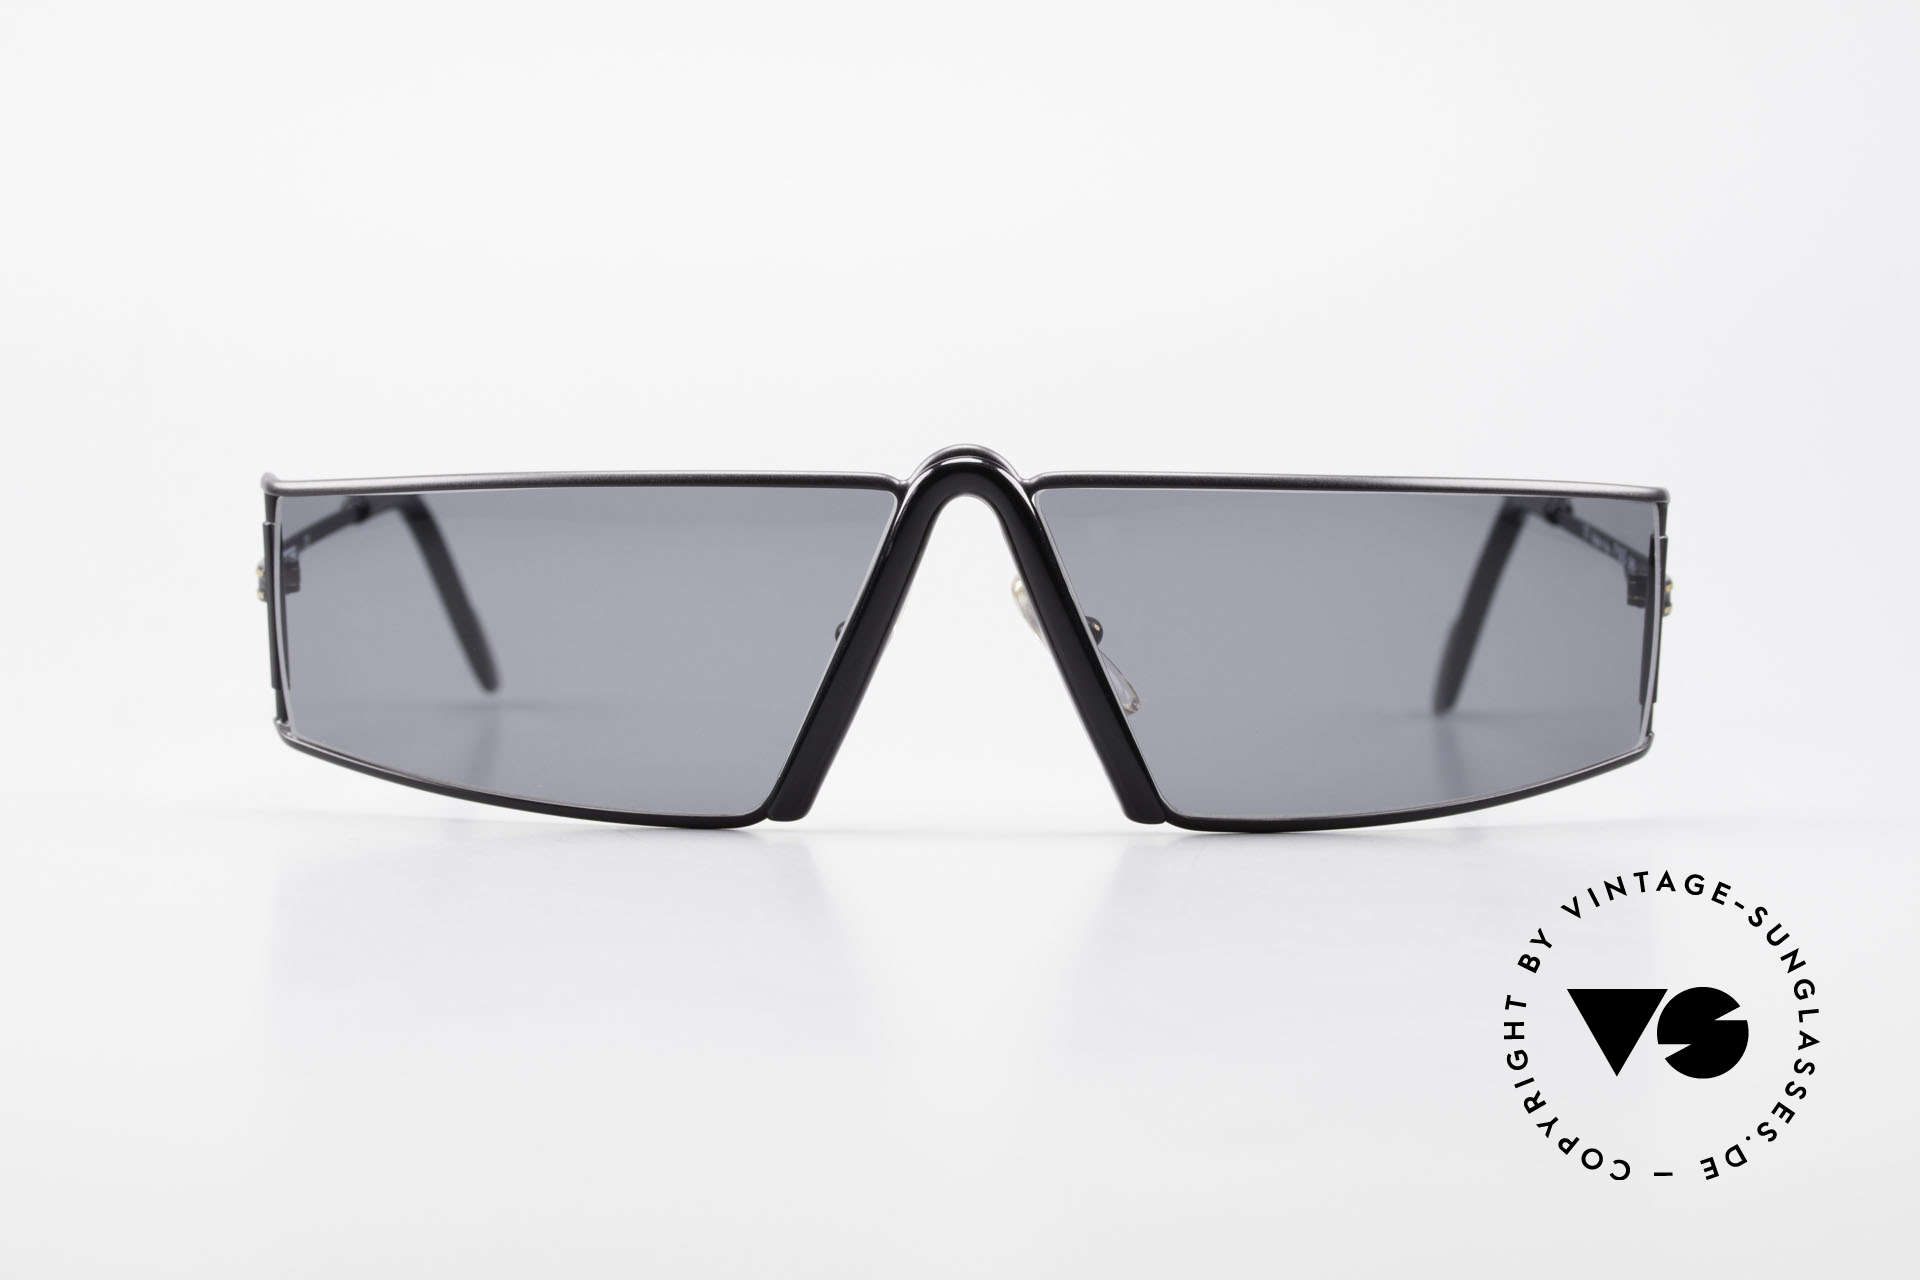 Ferrari F19/S Shades Like XL Reading Specs, shades are designed like oversized reading glasses, Made for Men